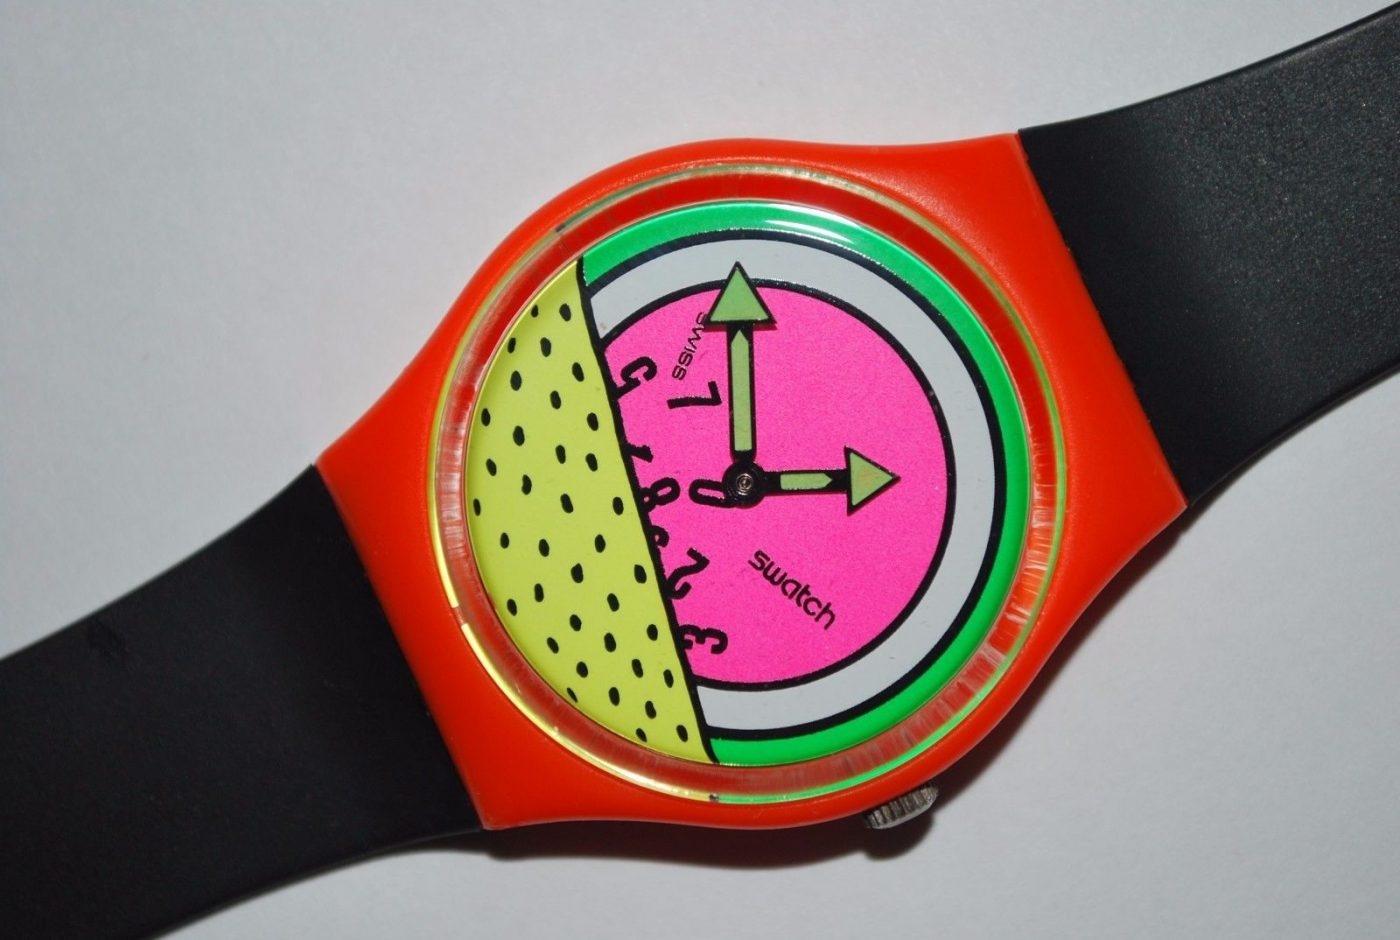 Un modèle de Montre Swatch, design 1984 à Keith Haring